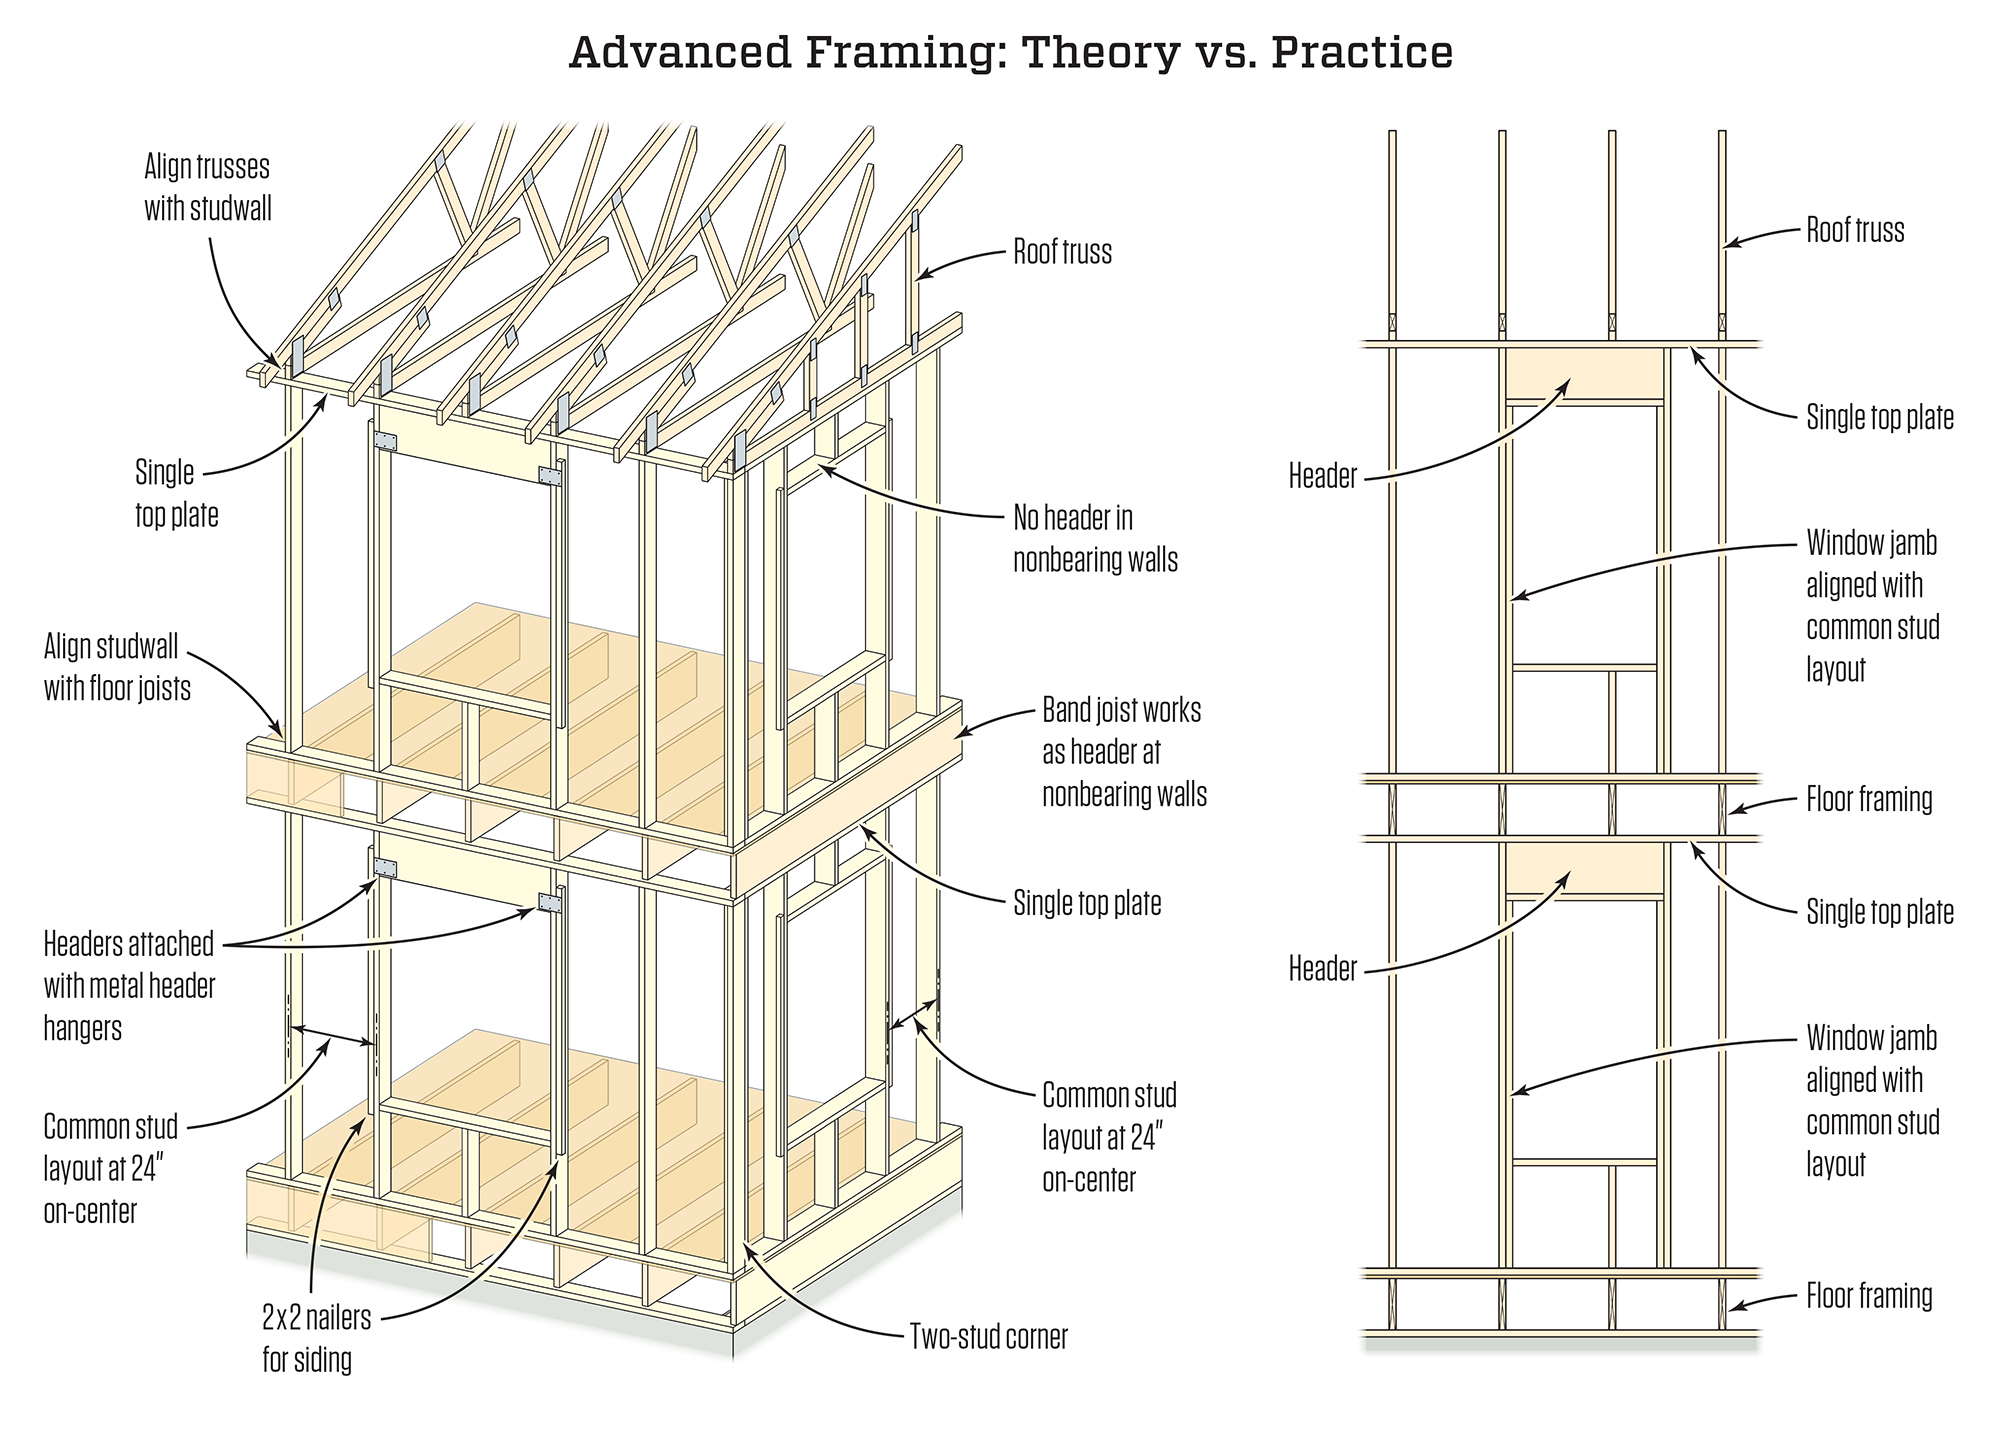 The Future Of Framing Jlc Online Lumber Building Materials Stair Anatomy Drawing Elements Parts Illustration Diagram Click To Enlarge